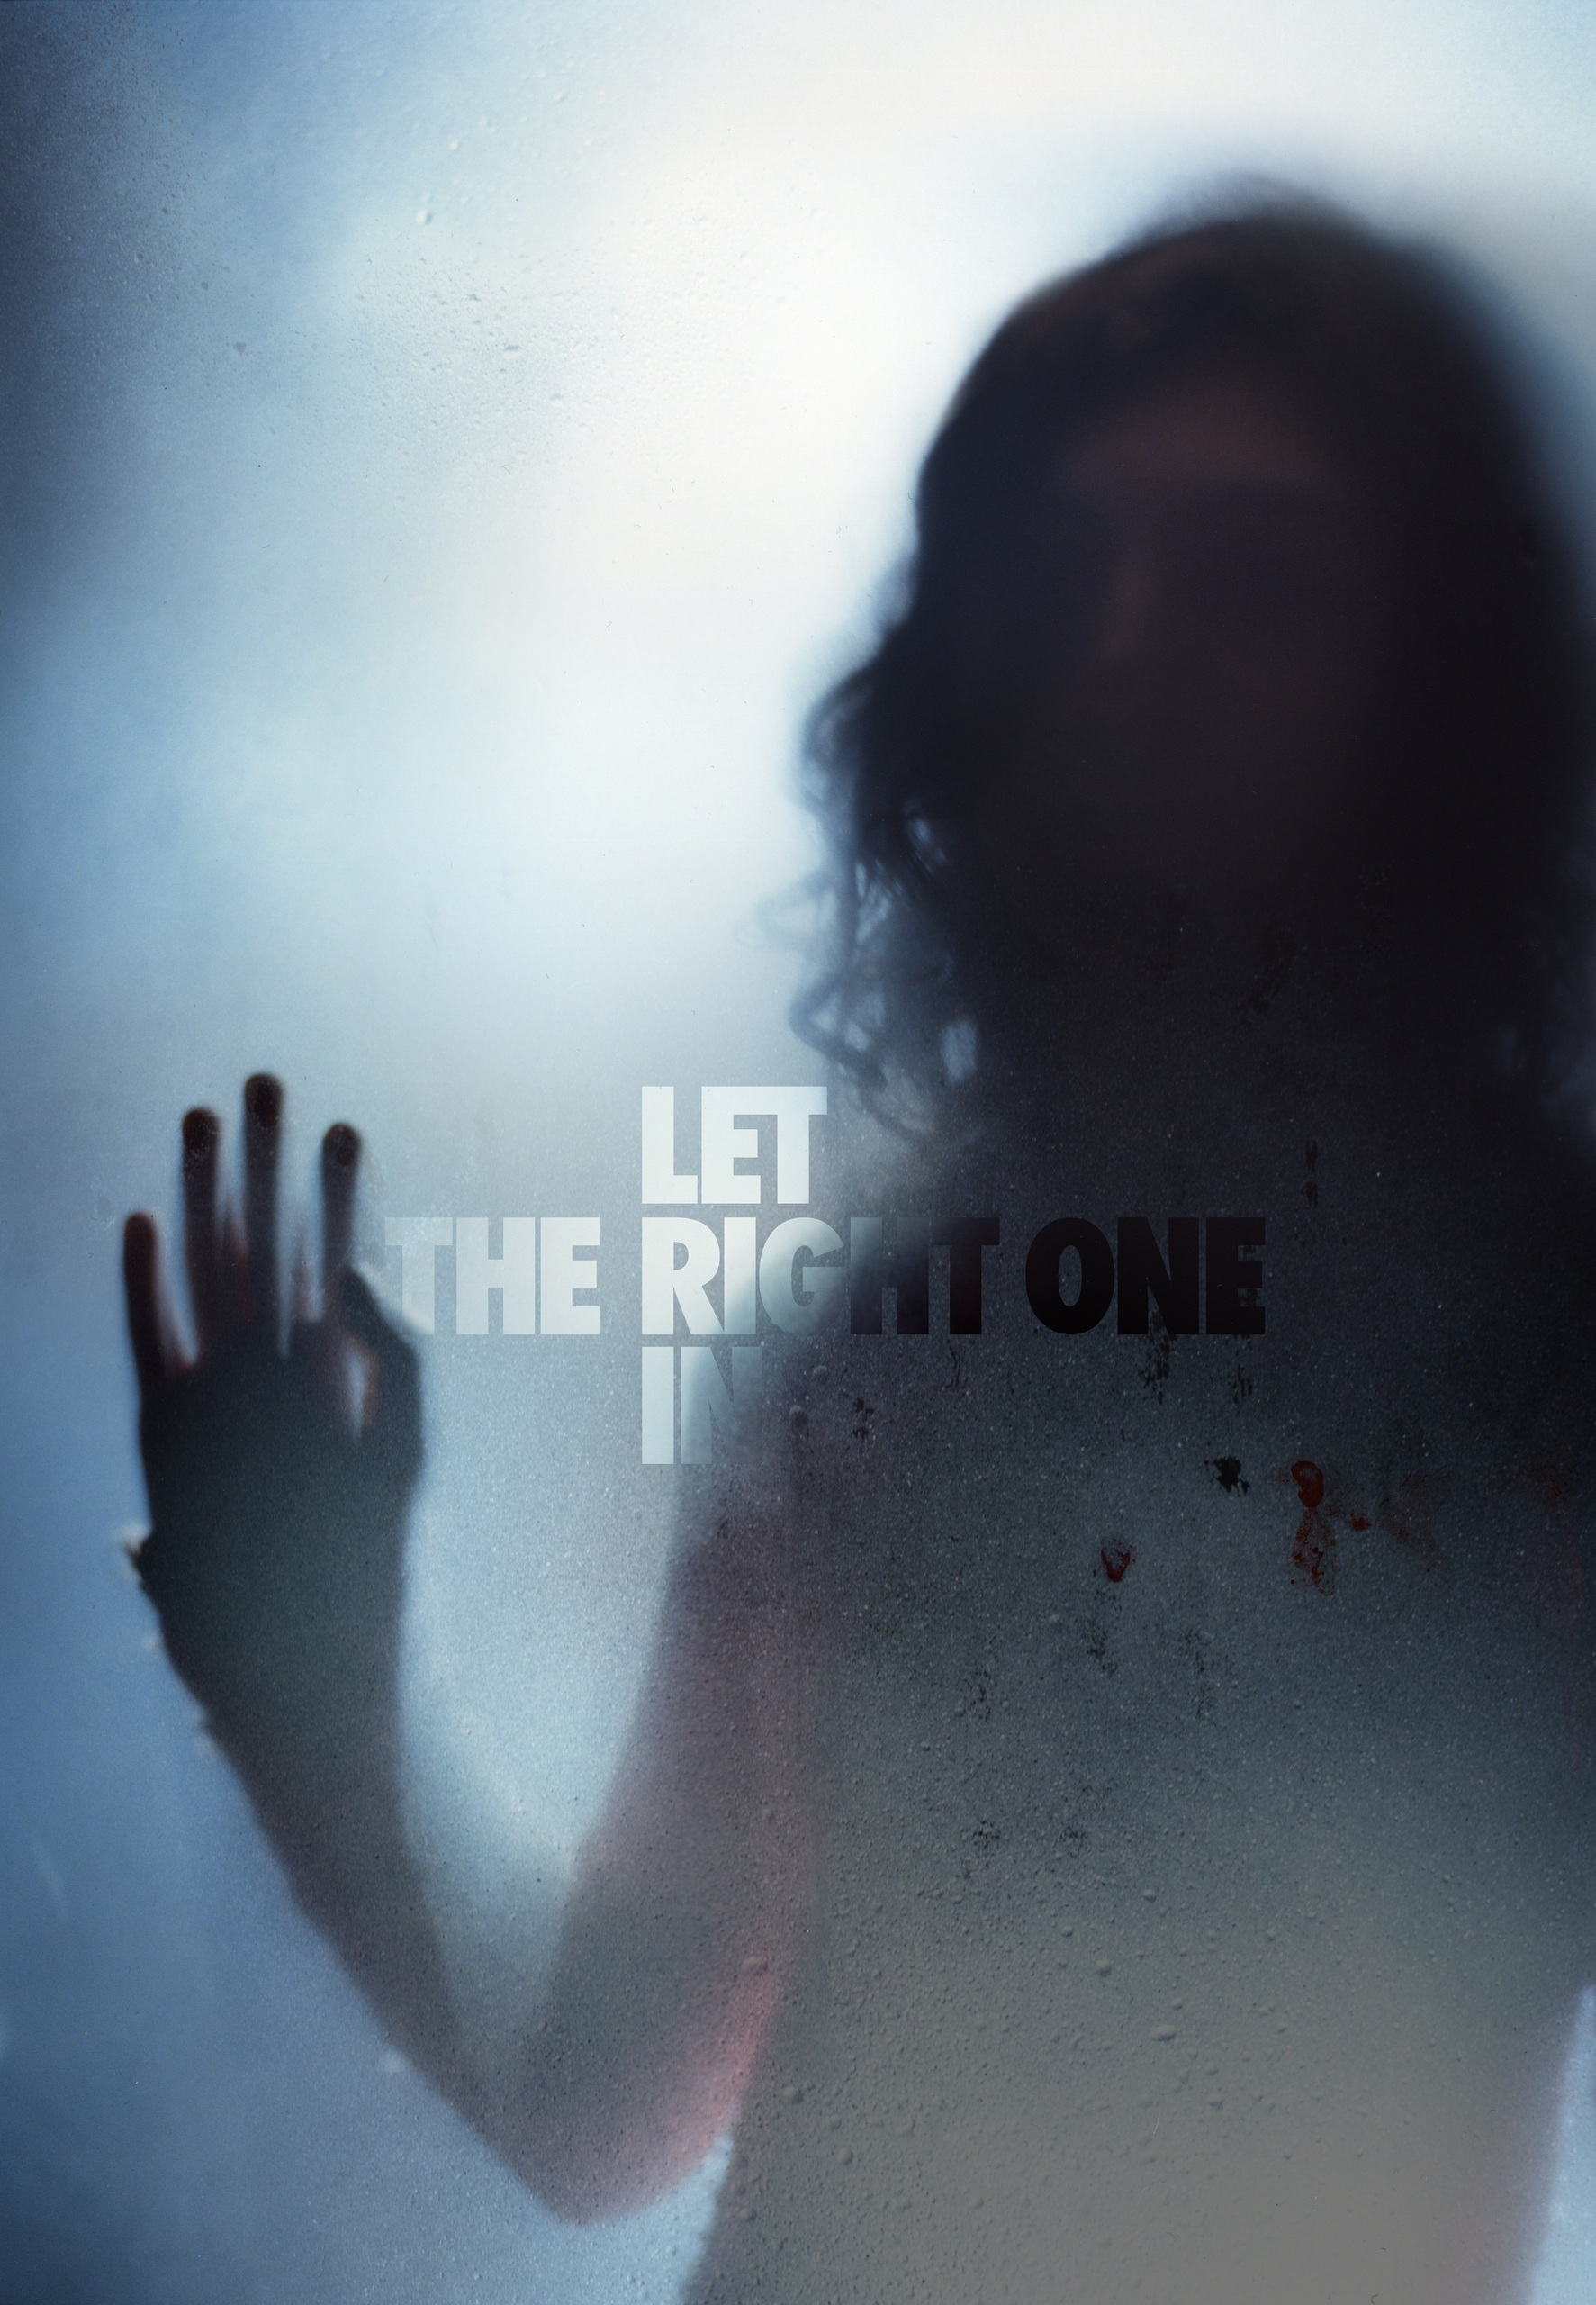 Let The Right One In39; Poster  Let the Right One In Photo 16068960